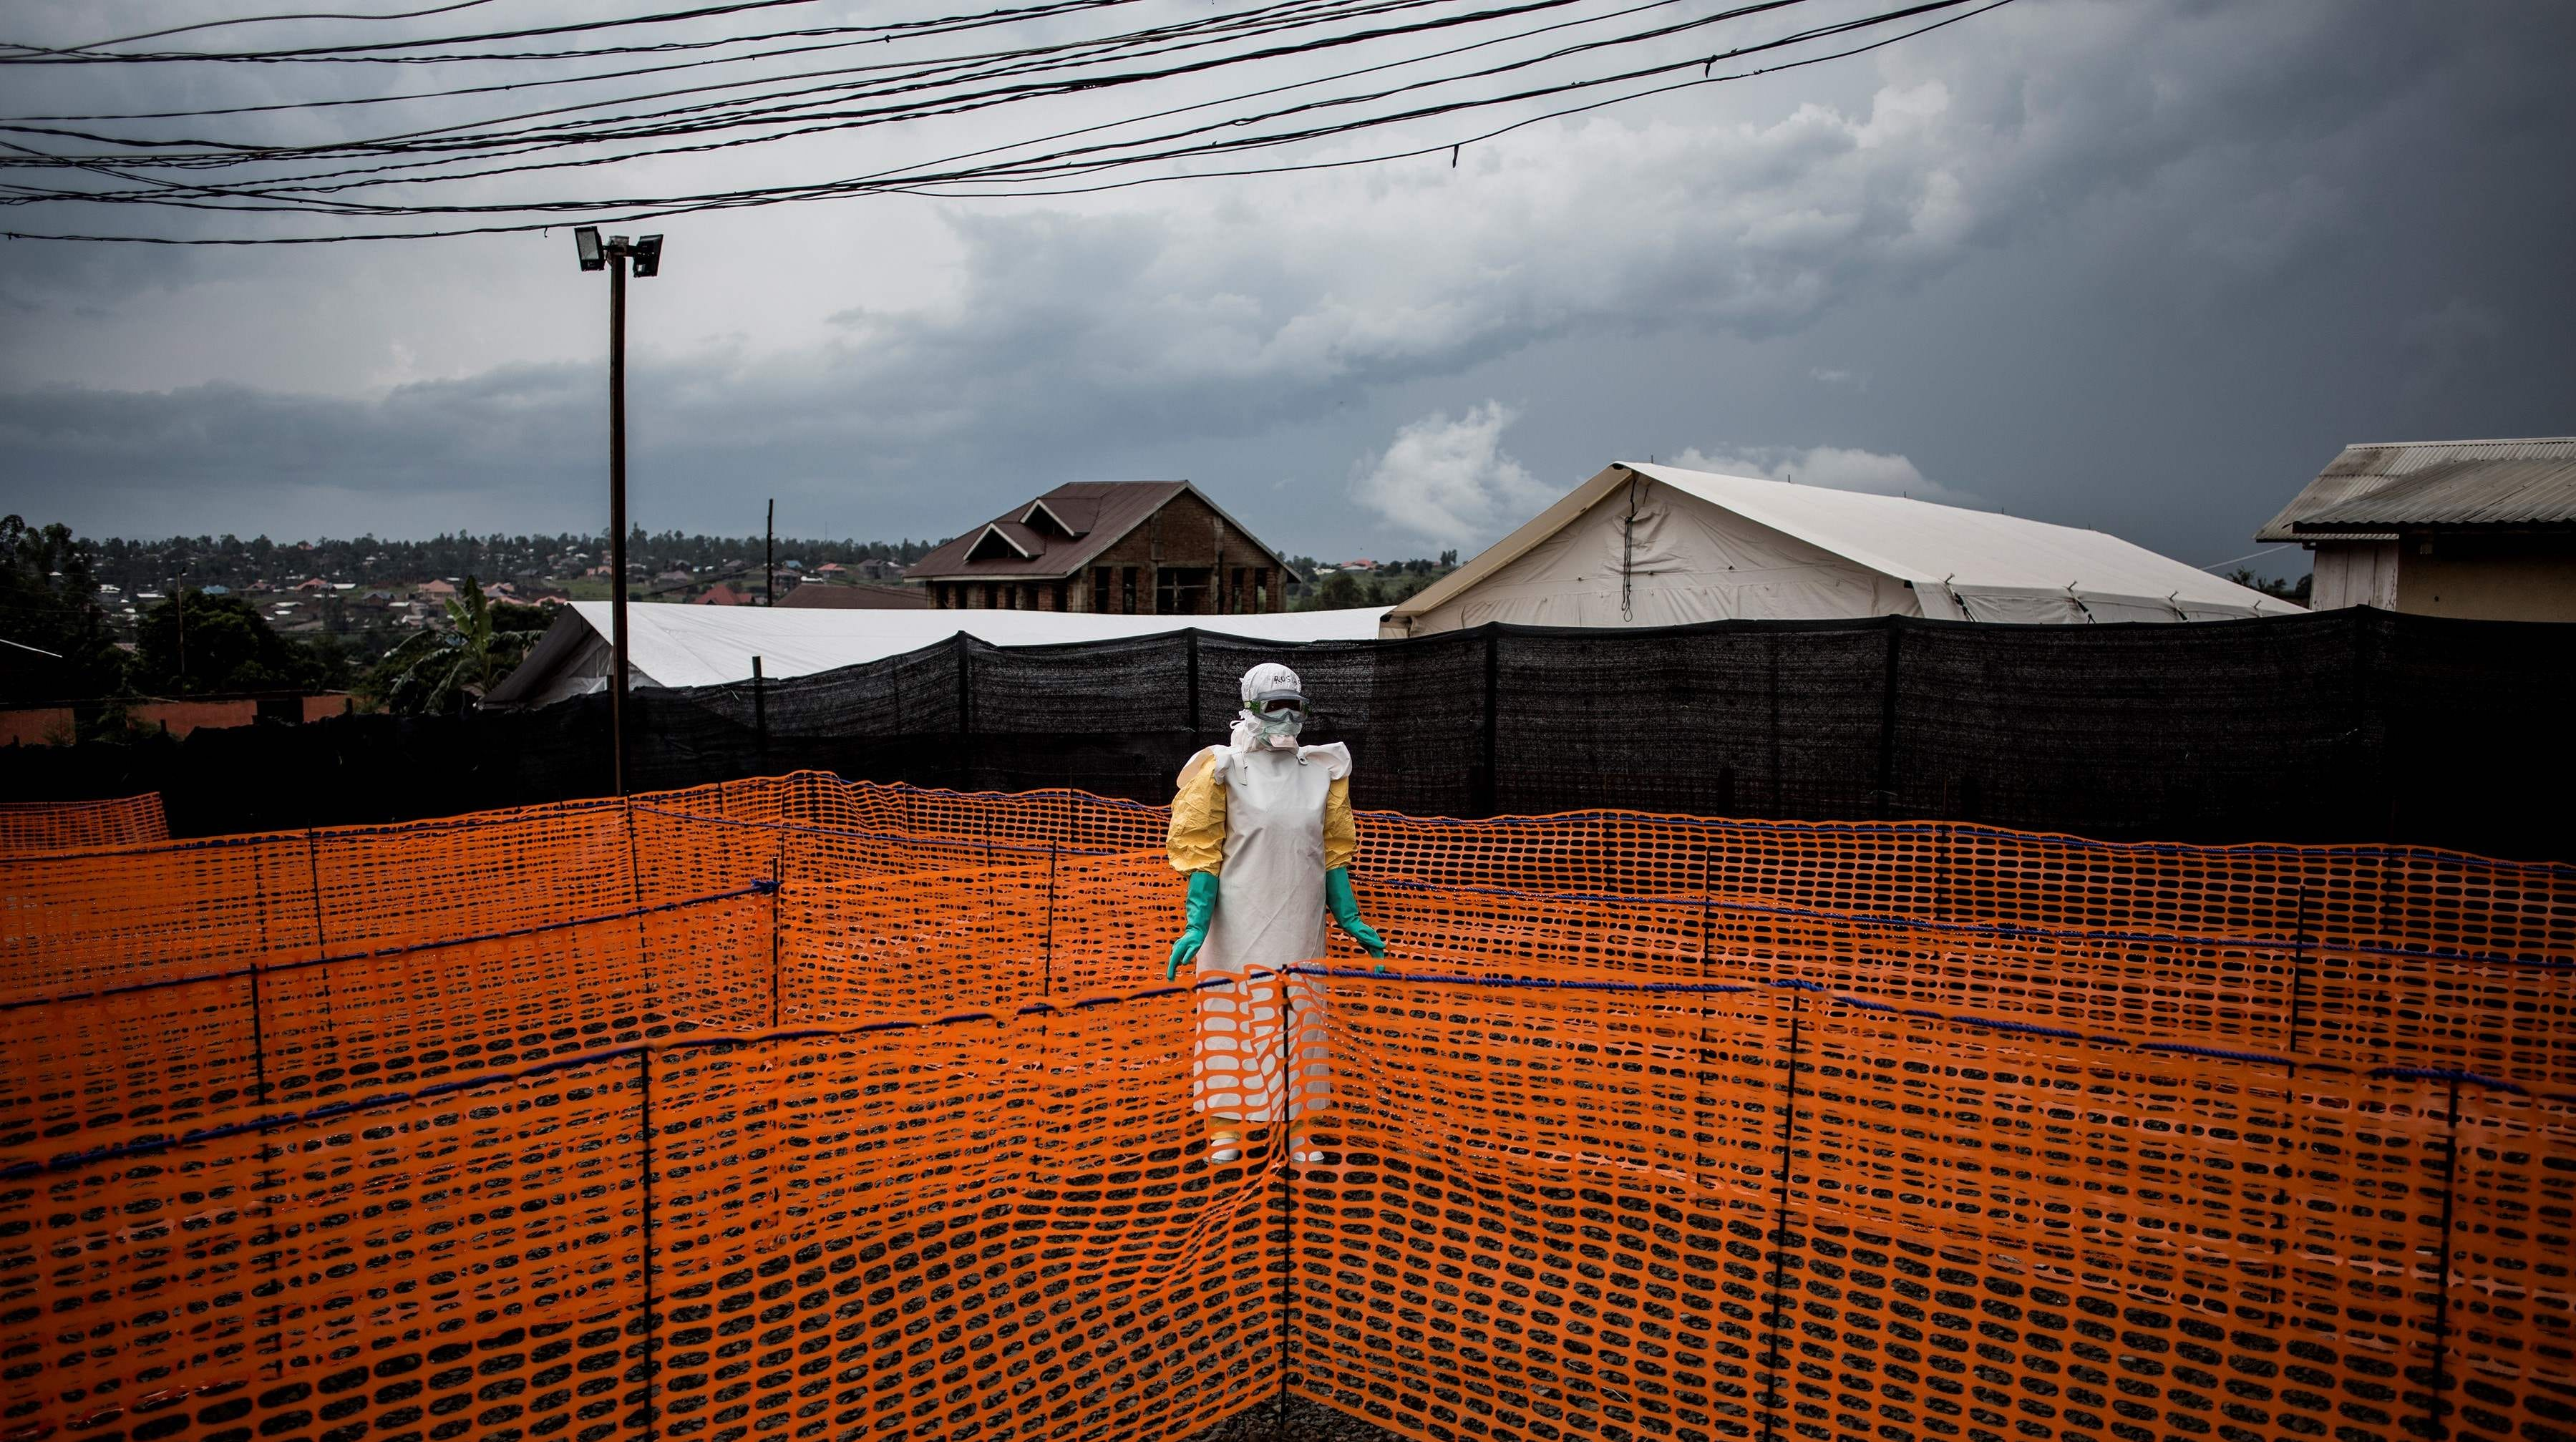 America must recognize and fight the real emergency of Ebola before it's too late